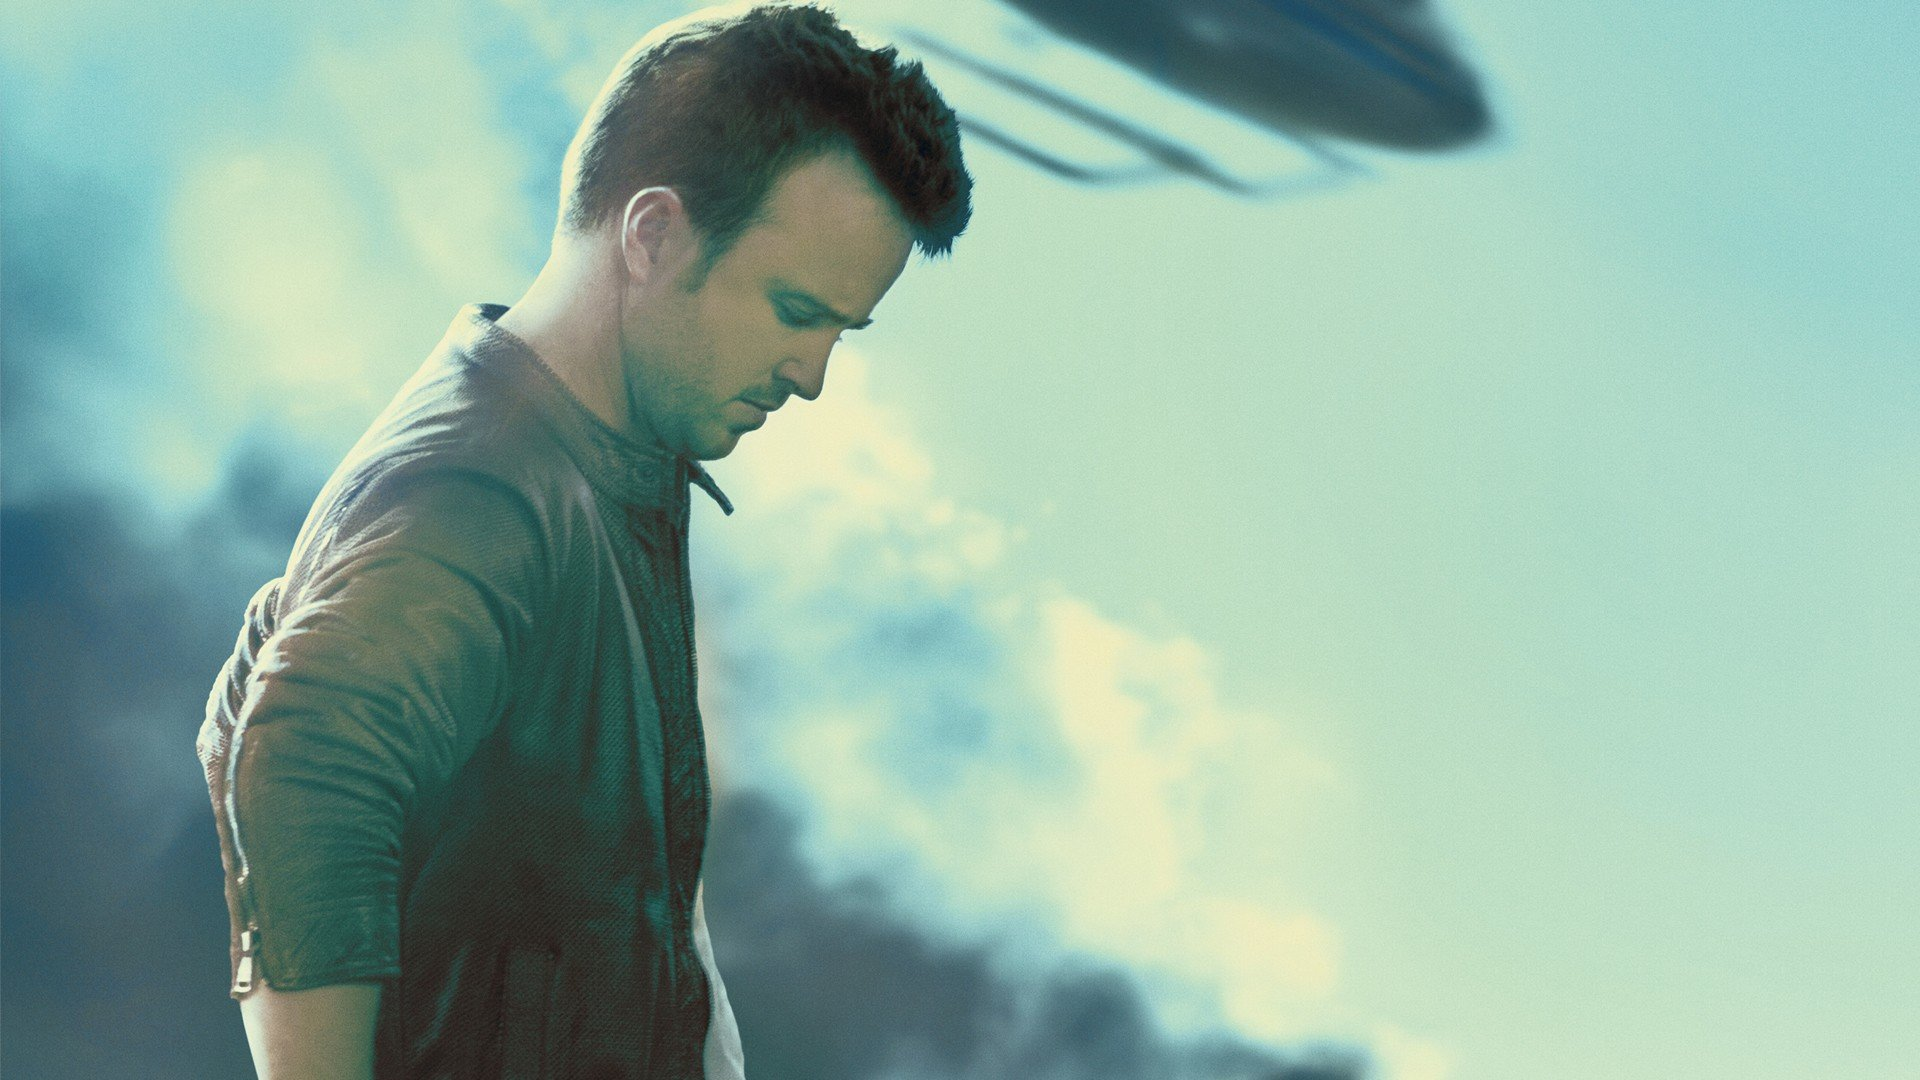 Free Need For Speed Movie High Quality Wallpaper Id 366947 For